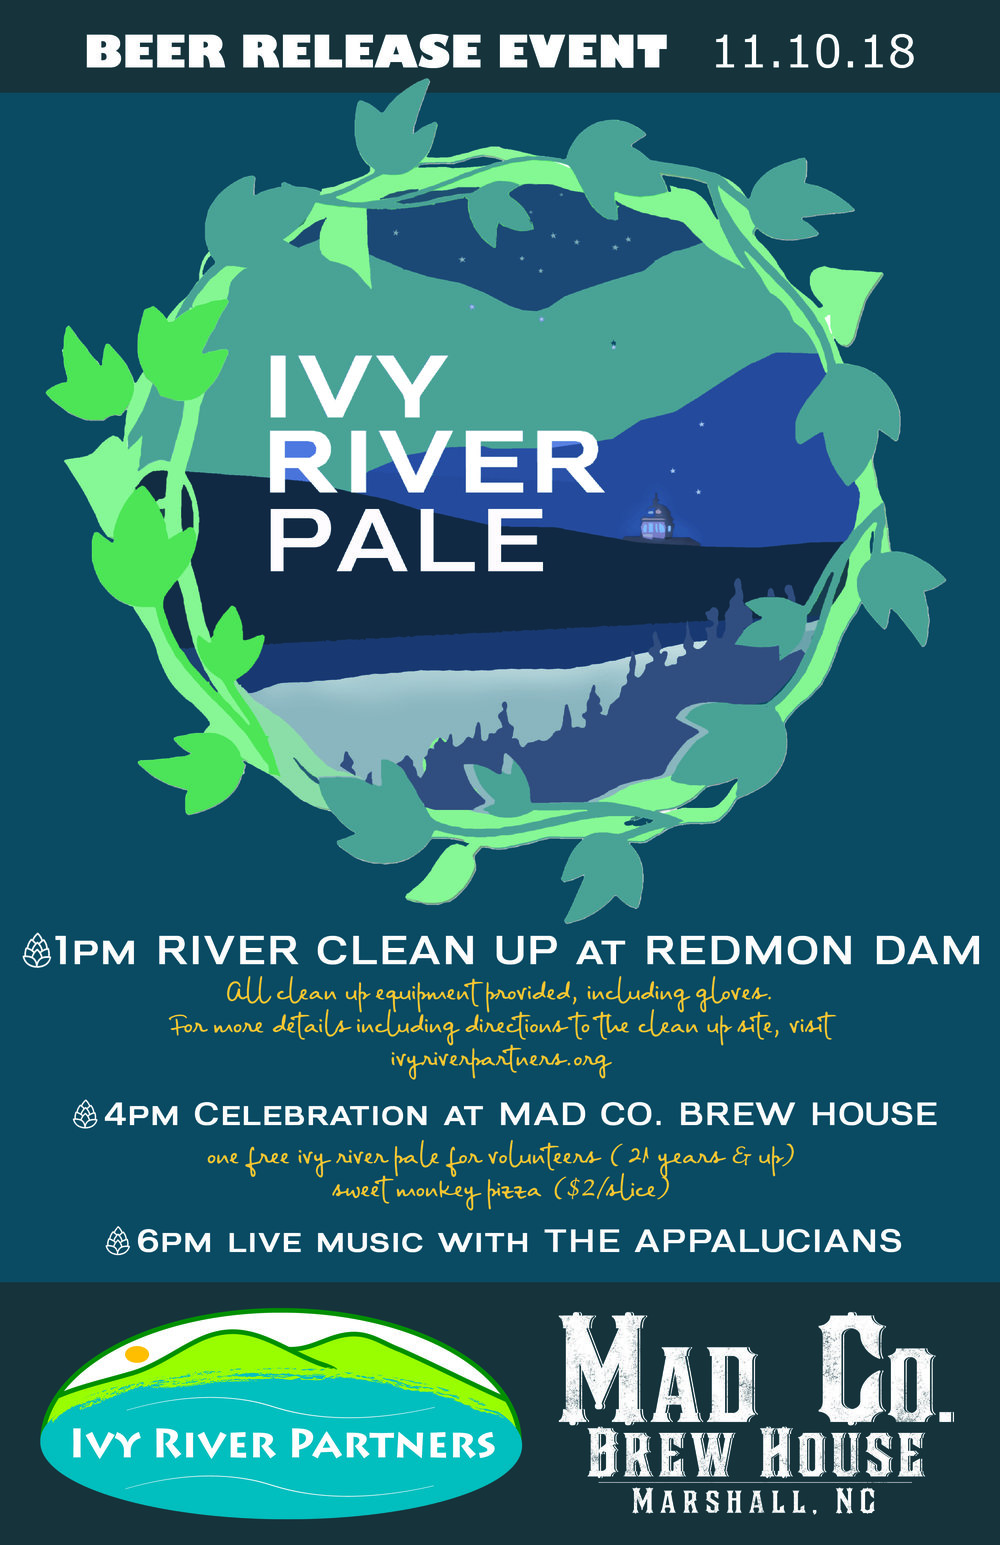 "River Clean-up 1-4 pm  Mad Co Brew House Beer Release/Sweet Monkey pizza 4-7 pm  Live music by ""The Appalucians"" 6 pm   Clean-up participants (21 years & up) will receive one free Ivy River Pale for their efforts!   Join Ivy River Partners for a community river clean-up at Redmon Dam near downtown Marshall and celebrate with us after at Mad Co Brew House for a beer release celebration featuring the ""Ivy River Pale,"" plus made-from-scratch Sweet Monkey Pizza ($2/slice). Stay for live music by Black Mountain folk band ""The Appalucians.""  All clean-up equipment provided (gloves, trash grabbers, bags, waders)   Directions to Redmon Dam Clean-up   From downtown Marshall:  Head North on Main Street to HWY 25/70. Turn left onto 25/70 and drive .7 mile. Turn left onto Little Pine Road and drive 1 mile. Turn left onto Sweet Water Rd. (there is no ""Sweet Water"" street sign on this side of Little Pine Rd., but there is on the right side for reference). Follow this road, keeping right at the fork and pass under railroad bridge to river parking lot that is located next to dam on French Broad River. Park Here.   We hope to see you November 10th!"